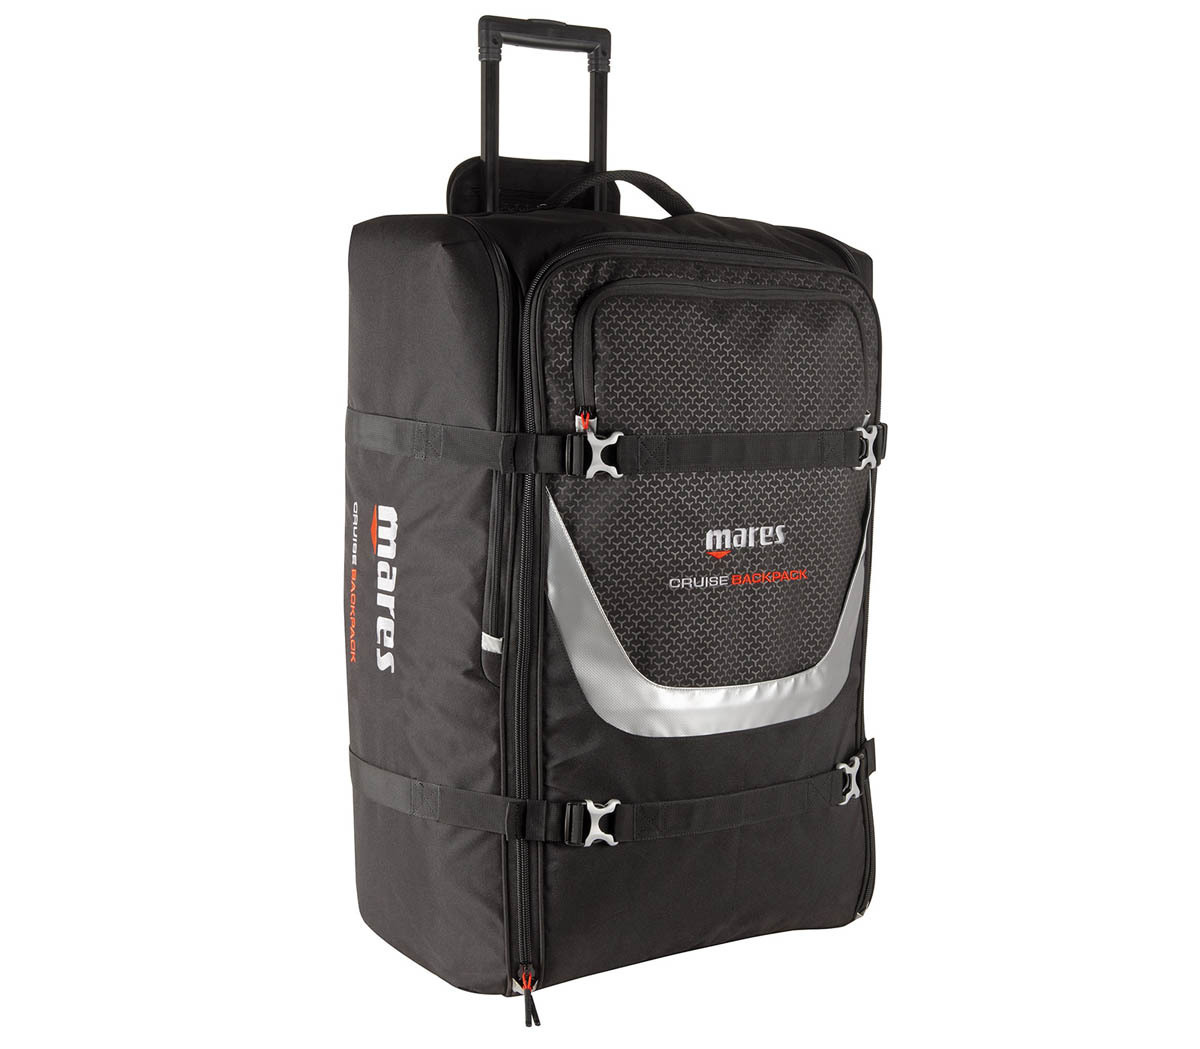 MARES(マレス)クルーズ バックパック CRUISE BACKPACK 40x31x80cm 100L 4.4kg 大型キャスターバッグ キャリーバッグ [415465]_画像1